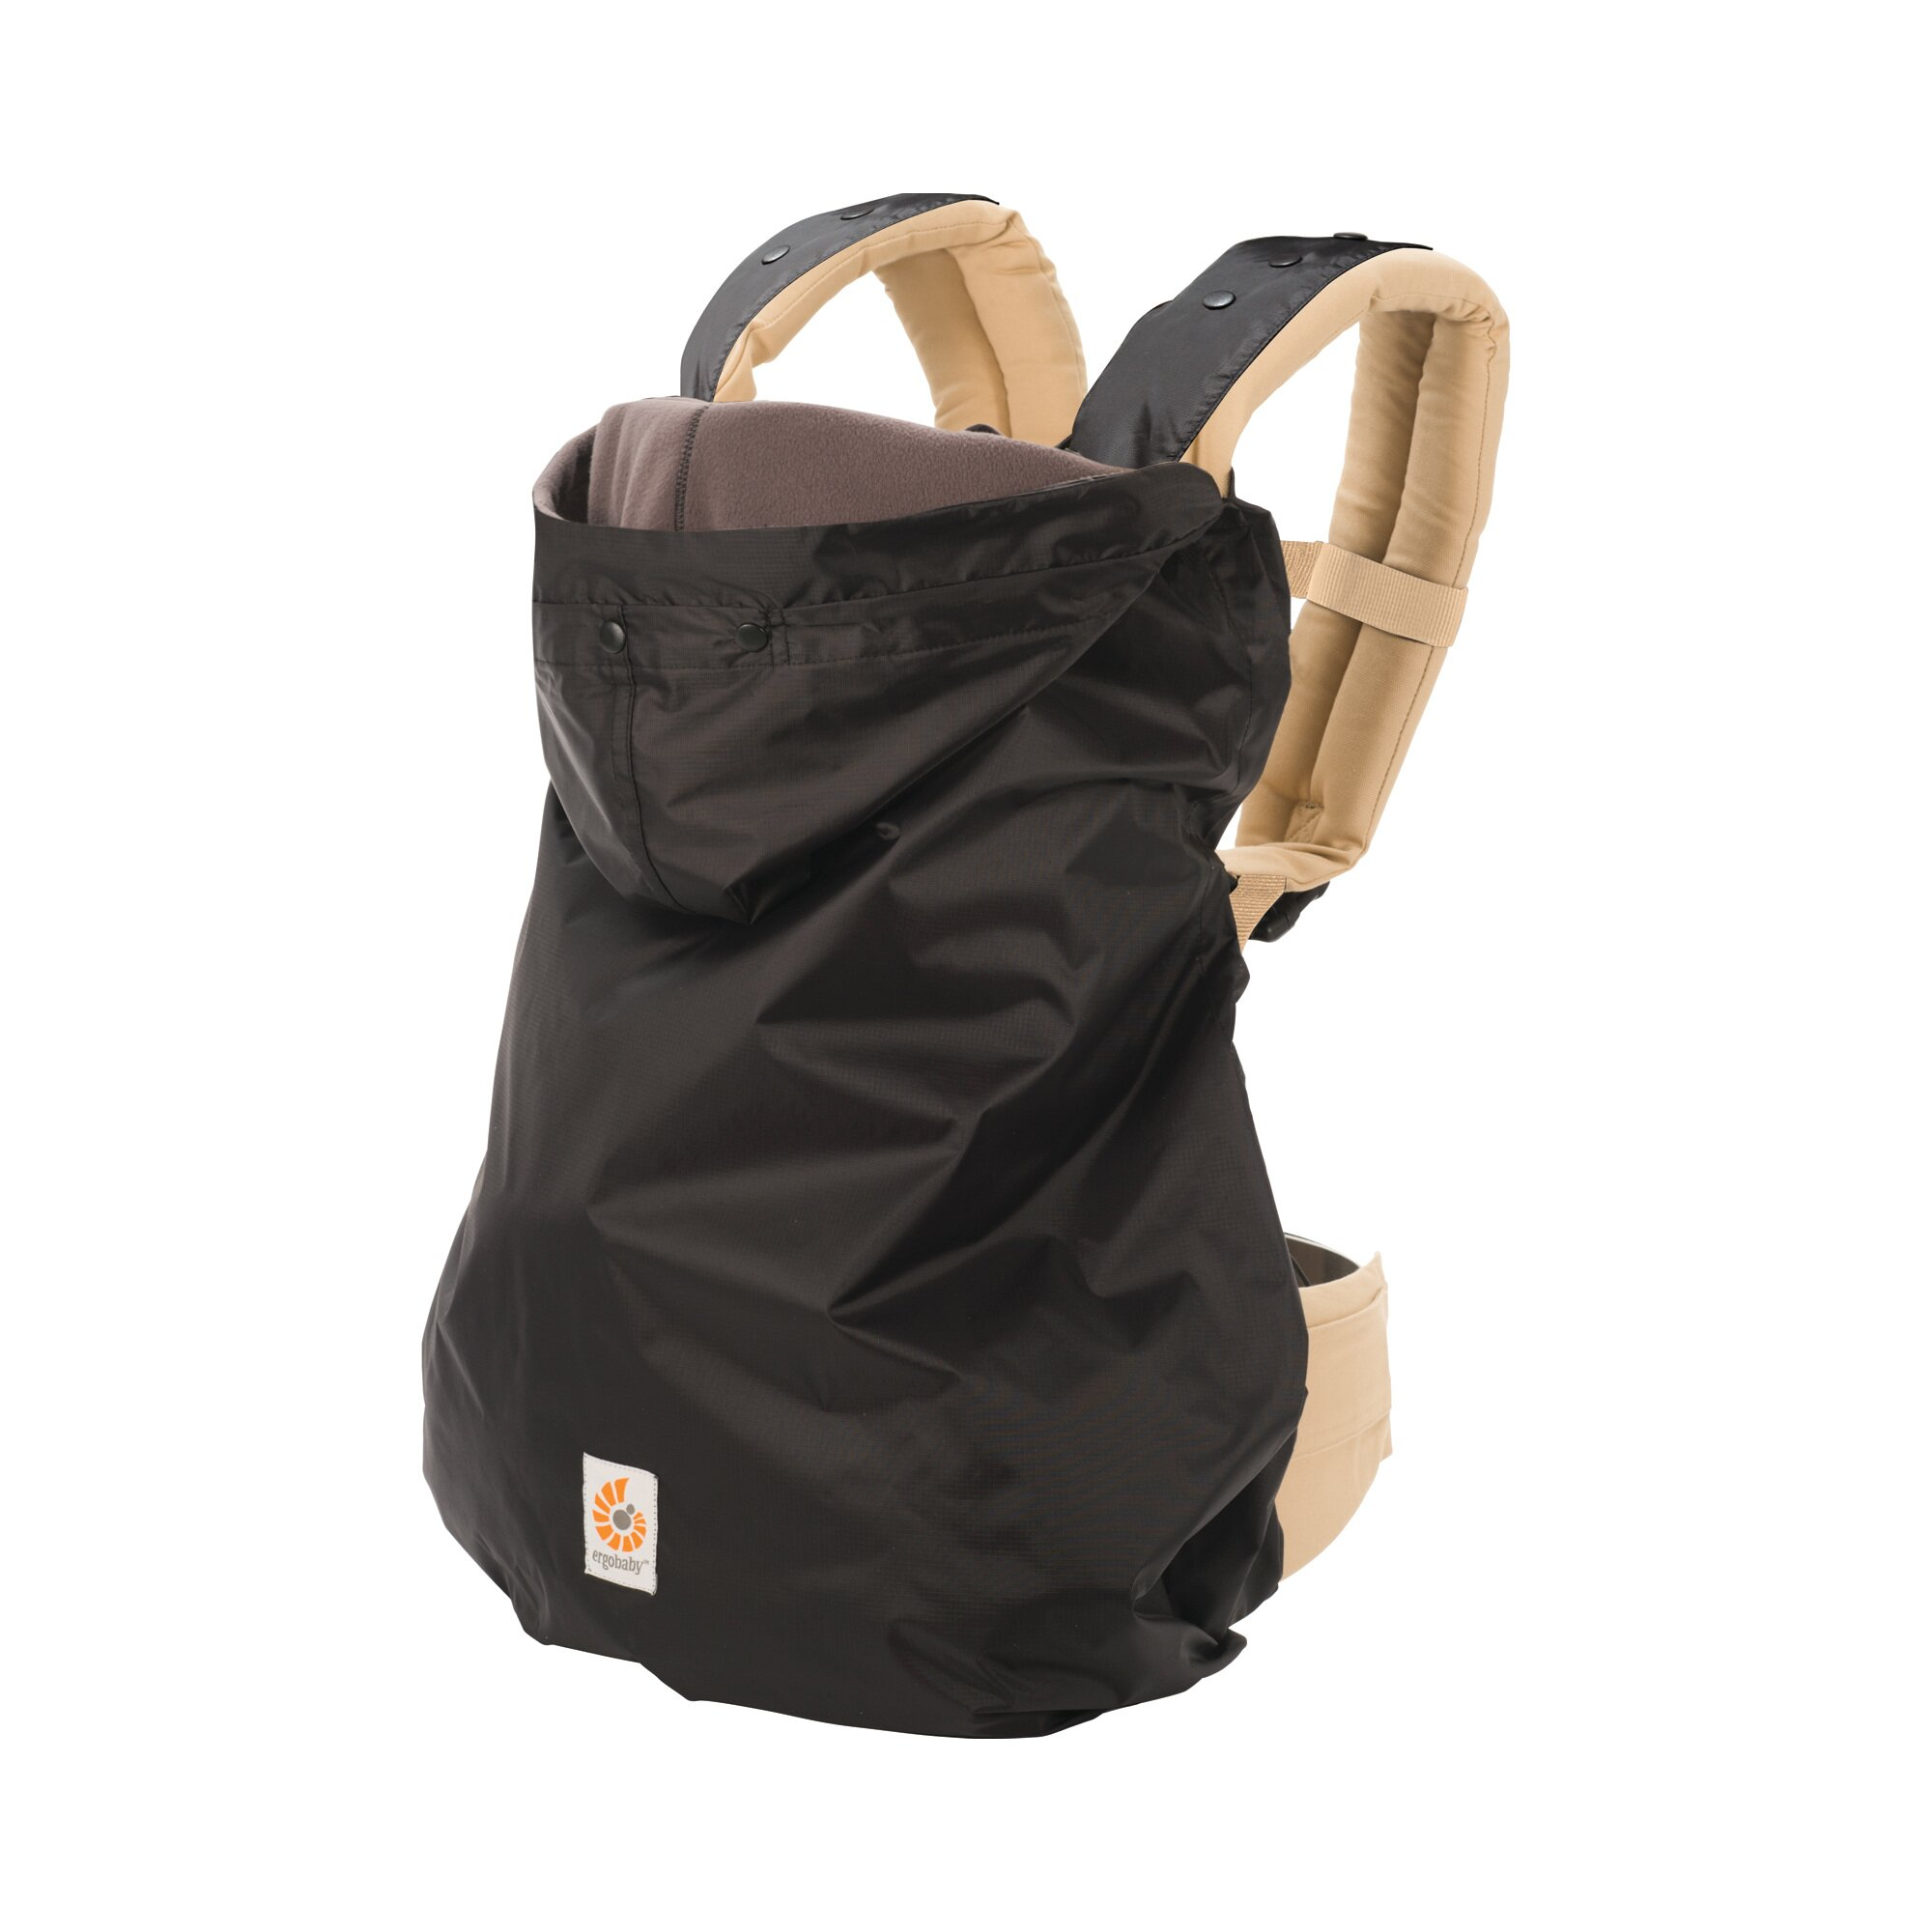 Ergobaby® Winter Cover 2in1